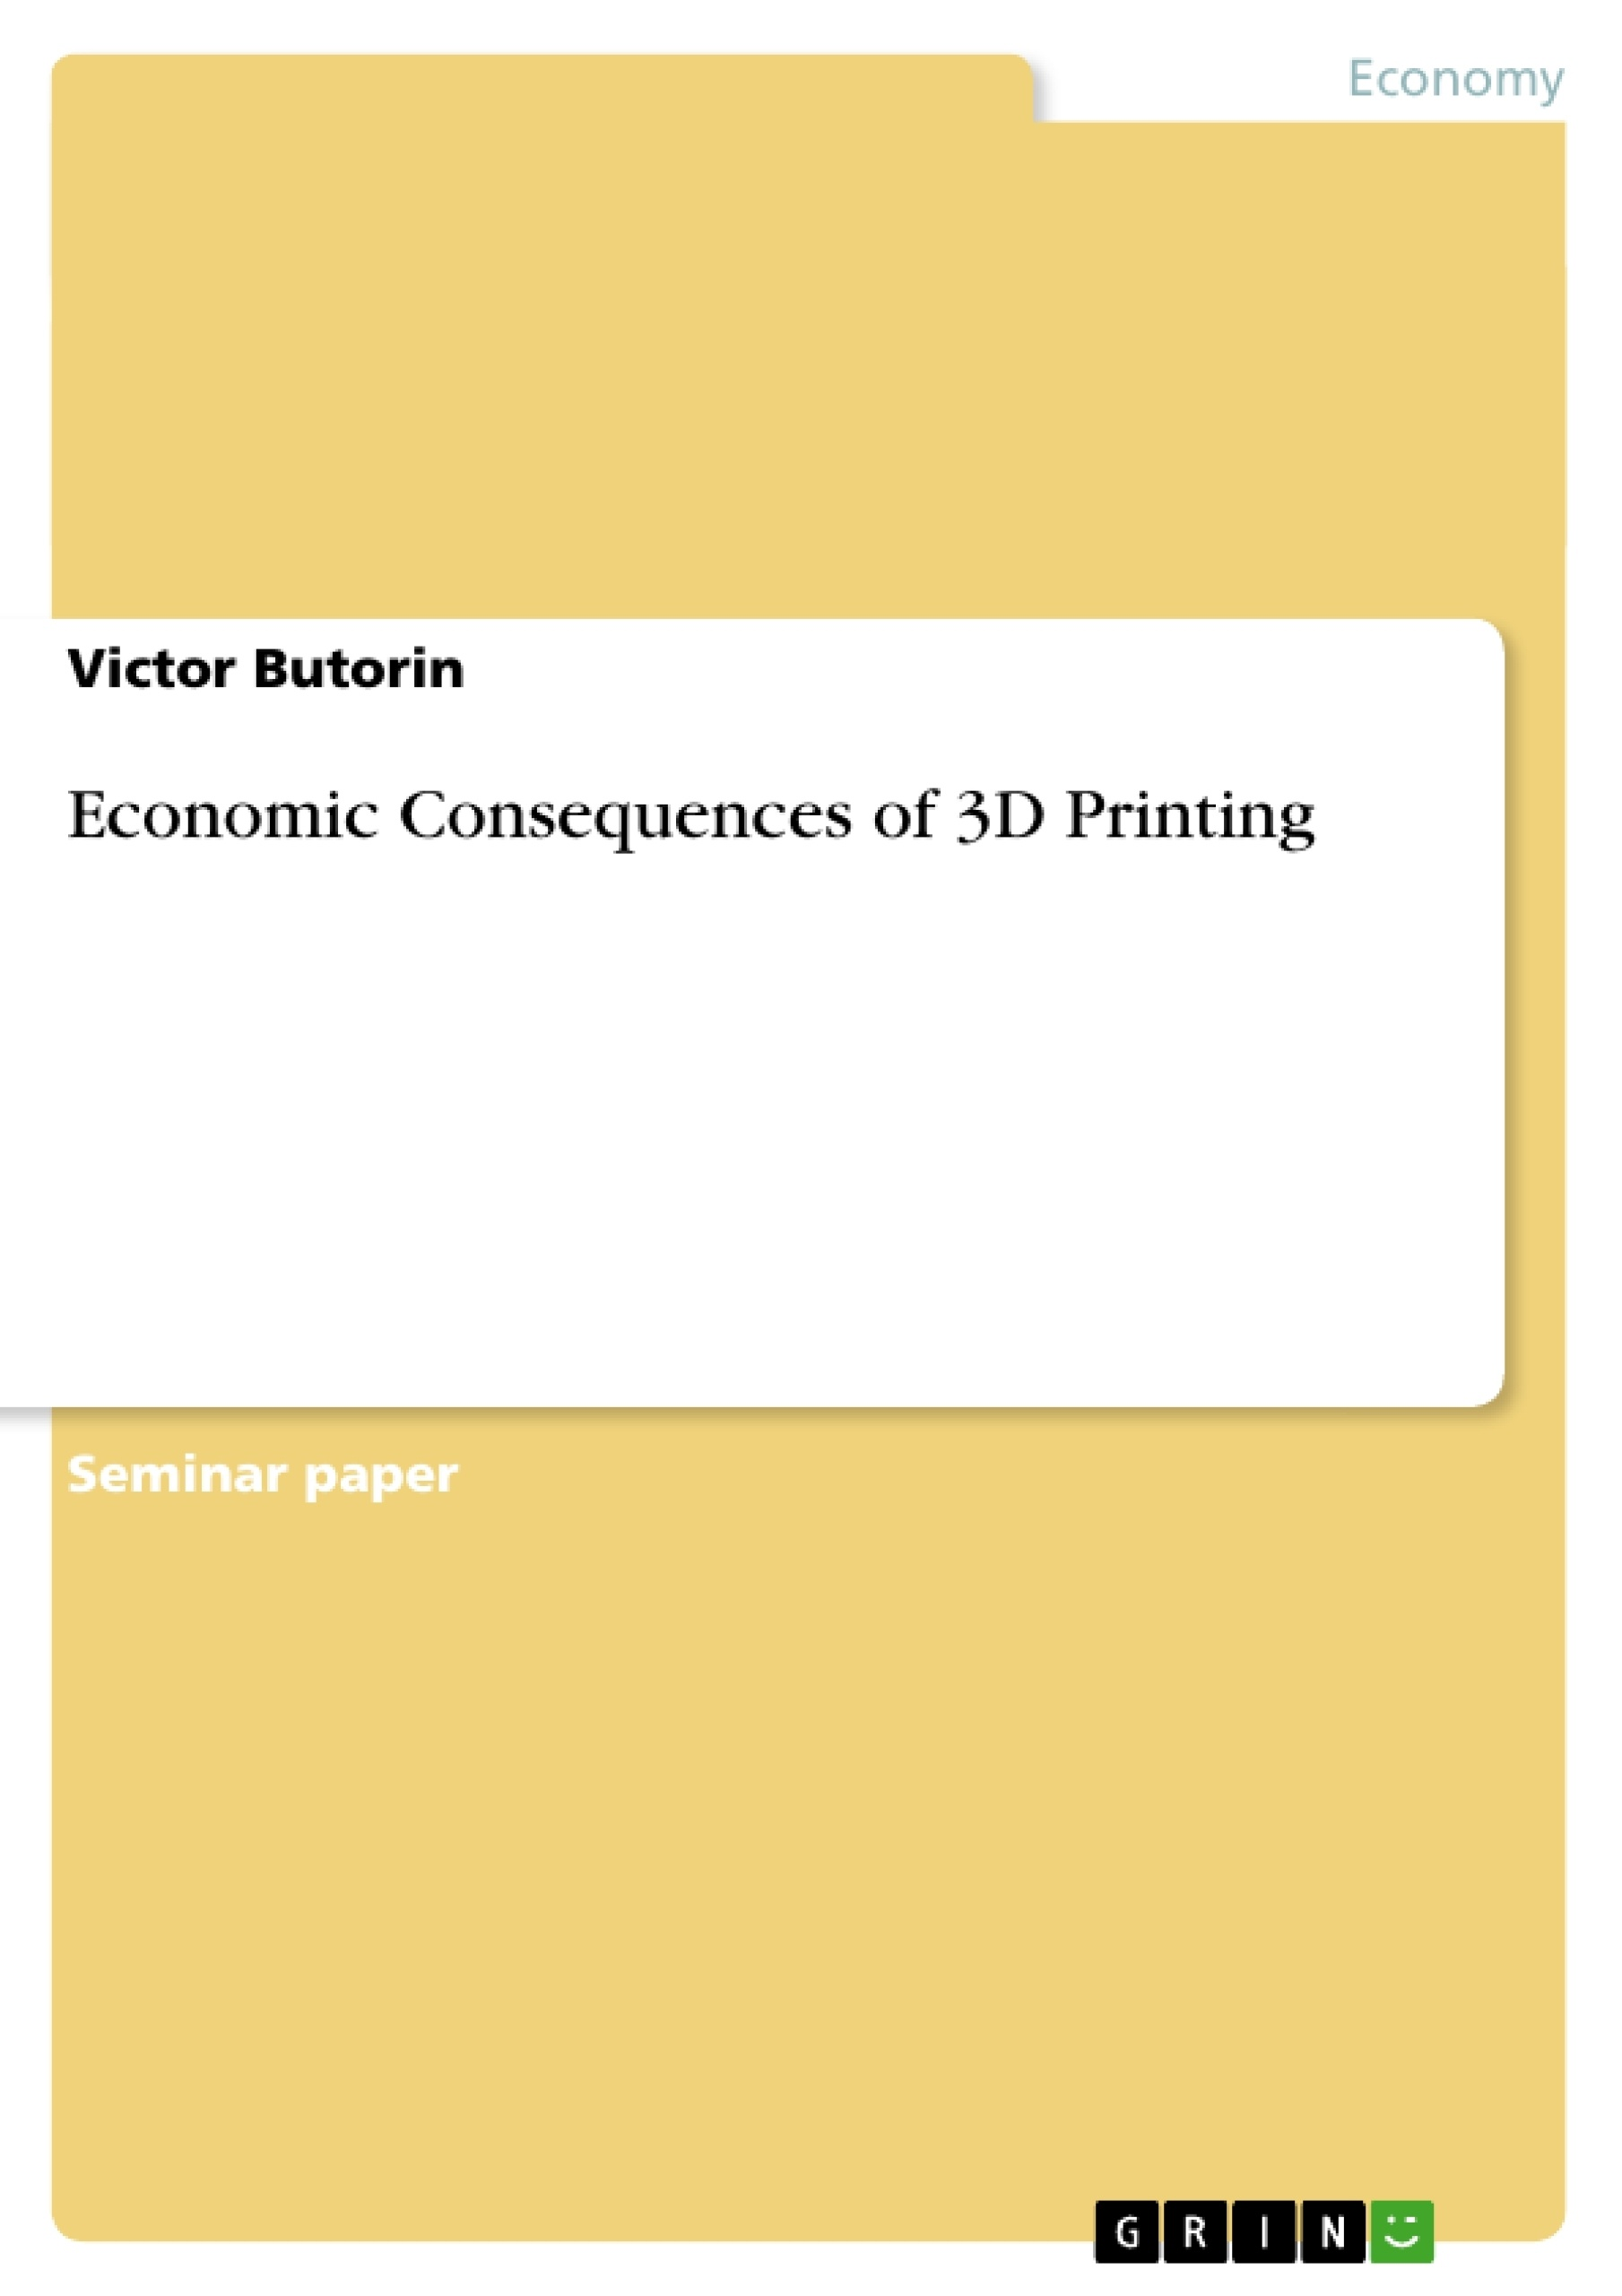 consequences of stealing essay economic consequences of d printing  economic consequences of d printing publish your master s economic consequences of 3d printing publish your